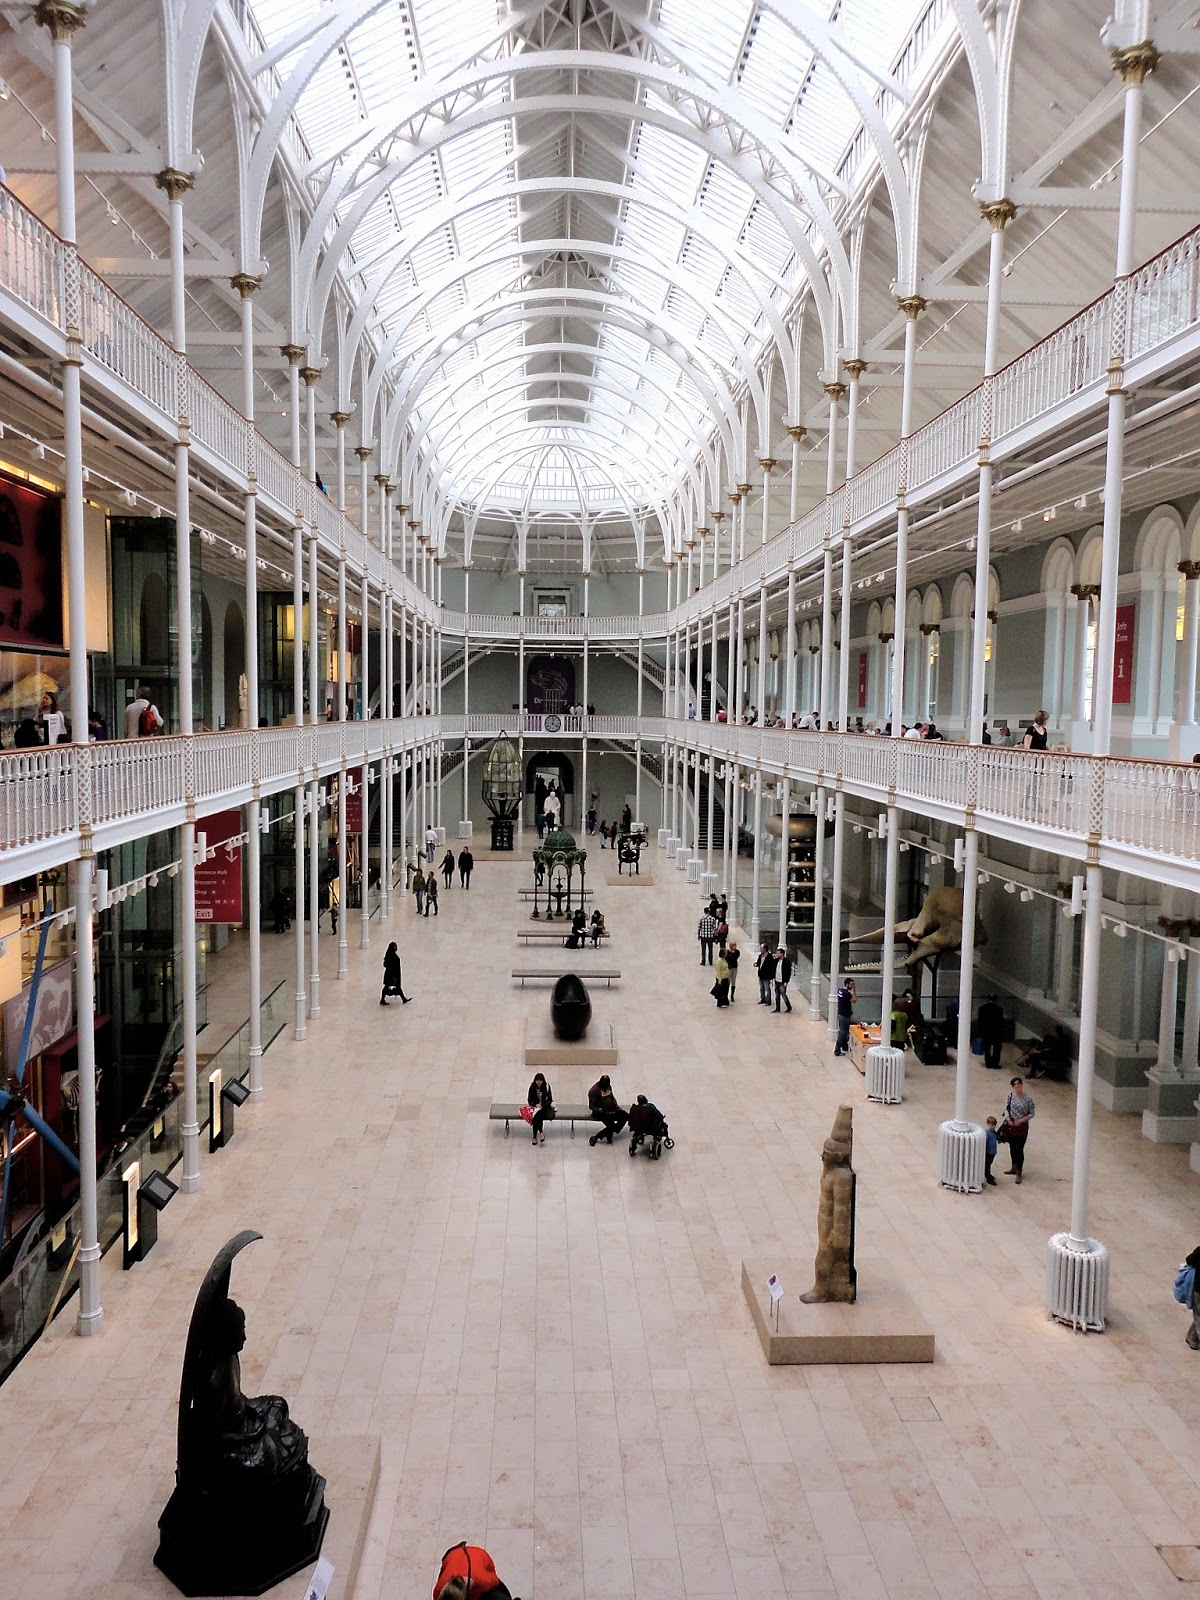 Main hall of National Museum of Scotland, Edinburgh